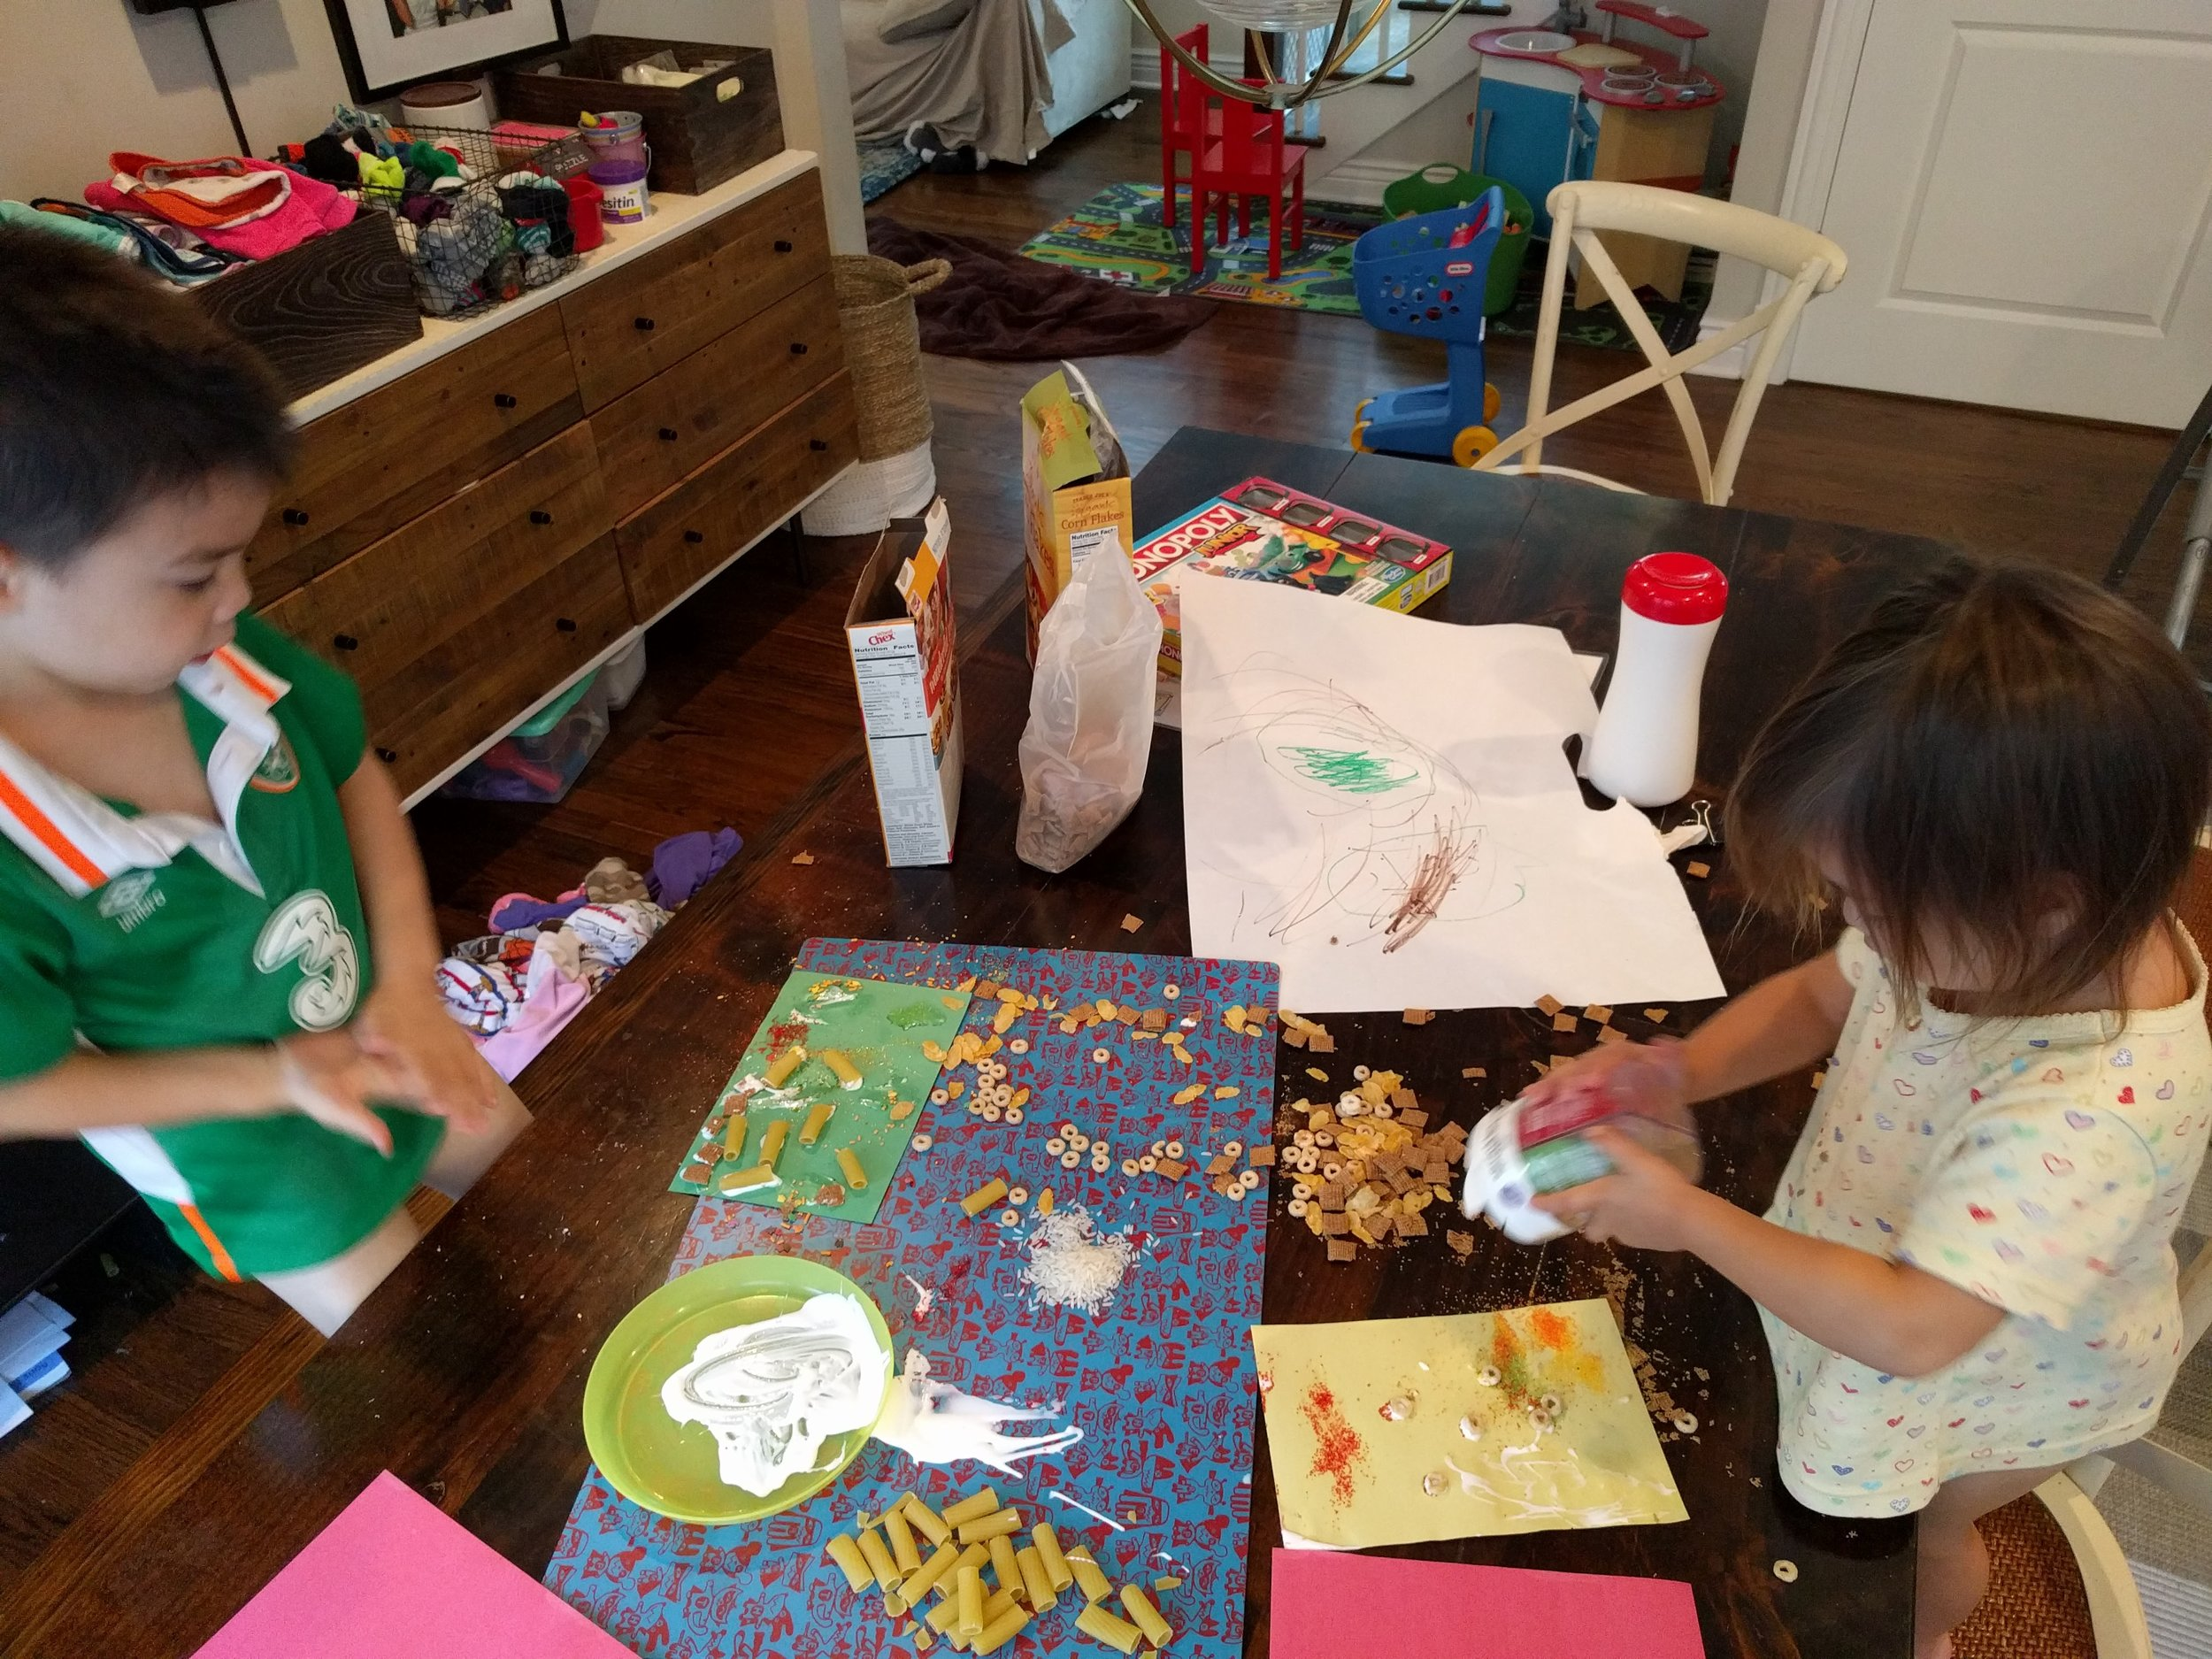 Crafting with modge podge, the last of an old box of rigatoni, stale cereal and sprinkles while I bake.  Later - they ate their art. I wish I was kidding.